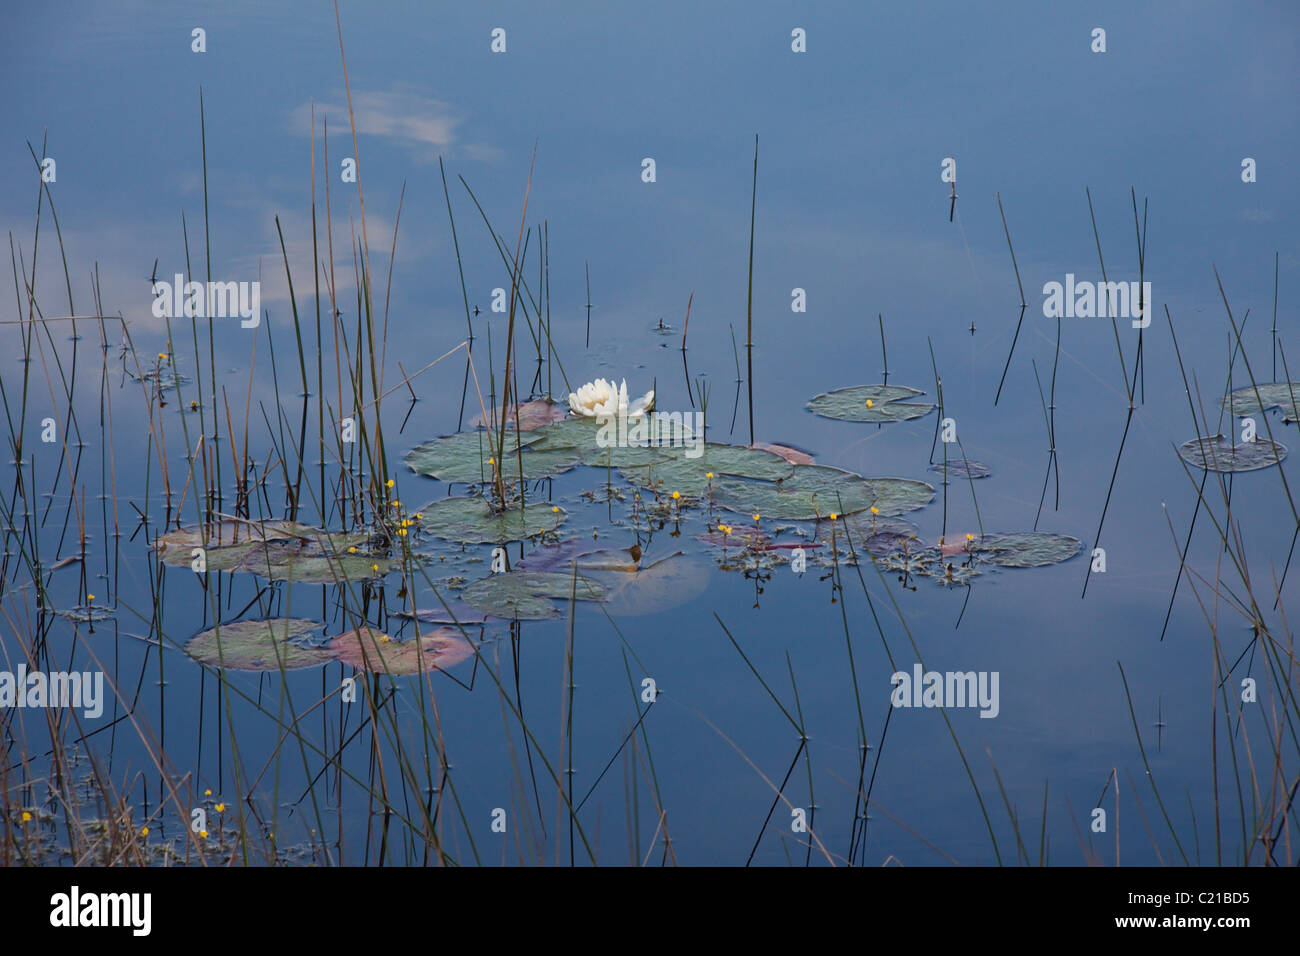 Water Lily Pad Grass Stock Photos & Water Lily Pad Grass Stock ...